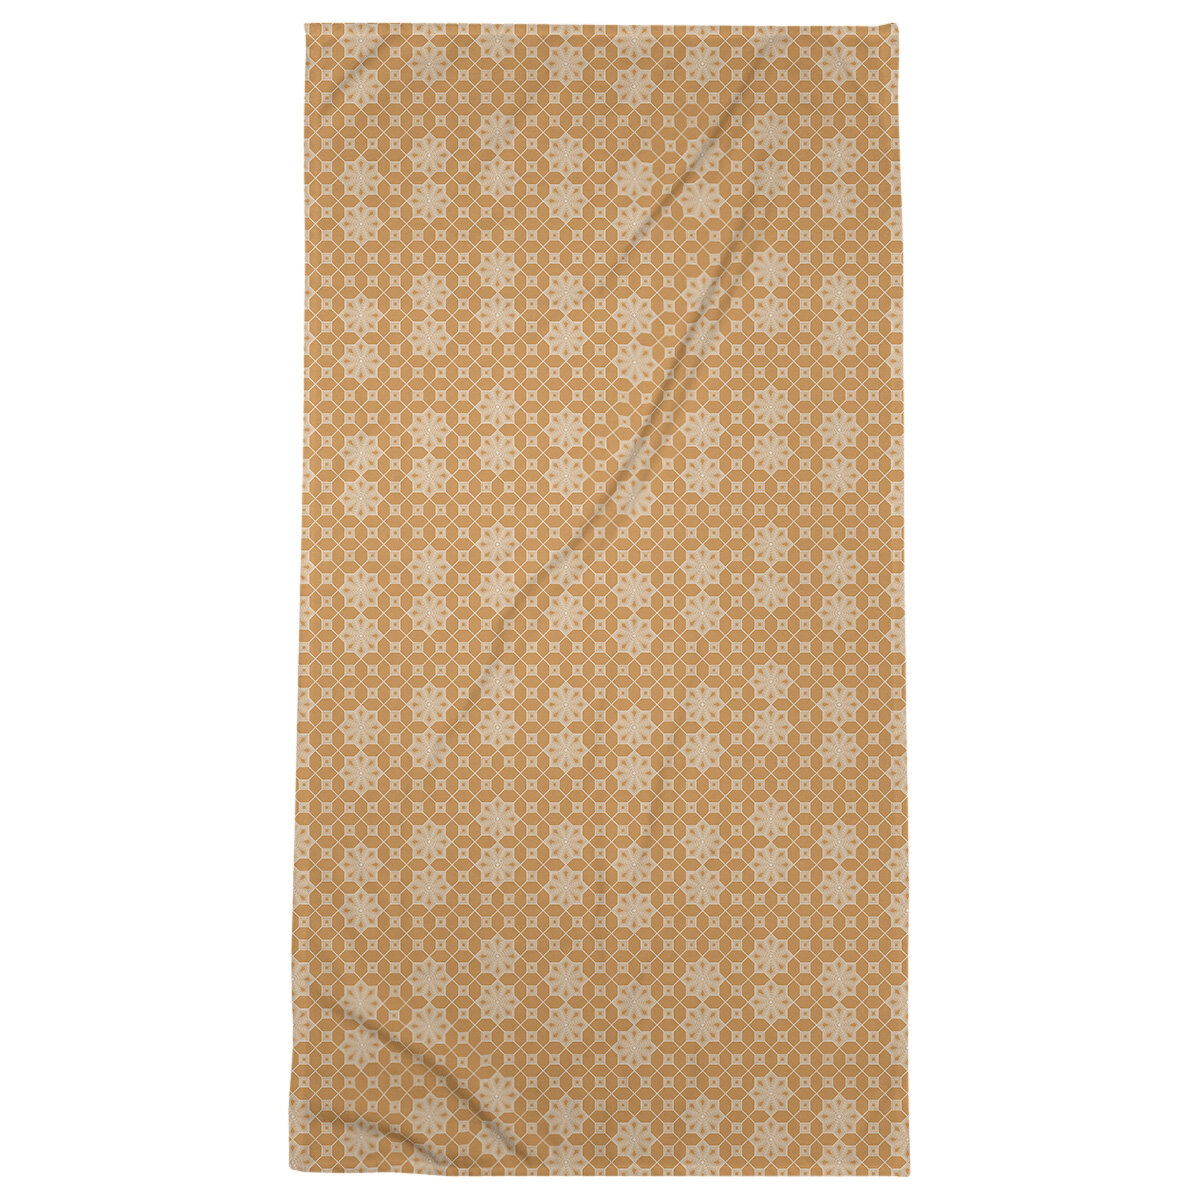 East Urban Home Classic Lattice Bath Towel Wayfair